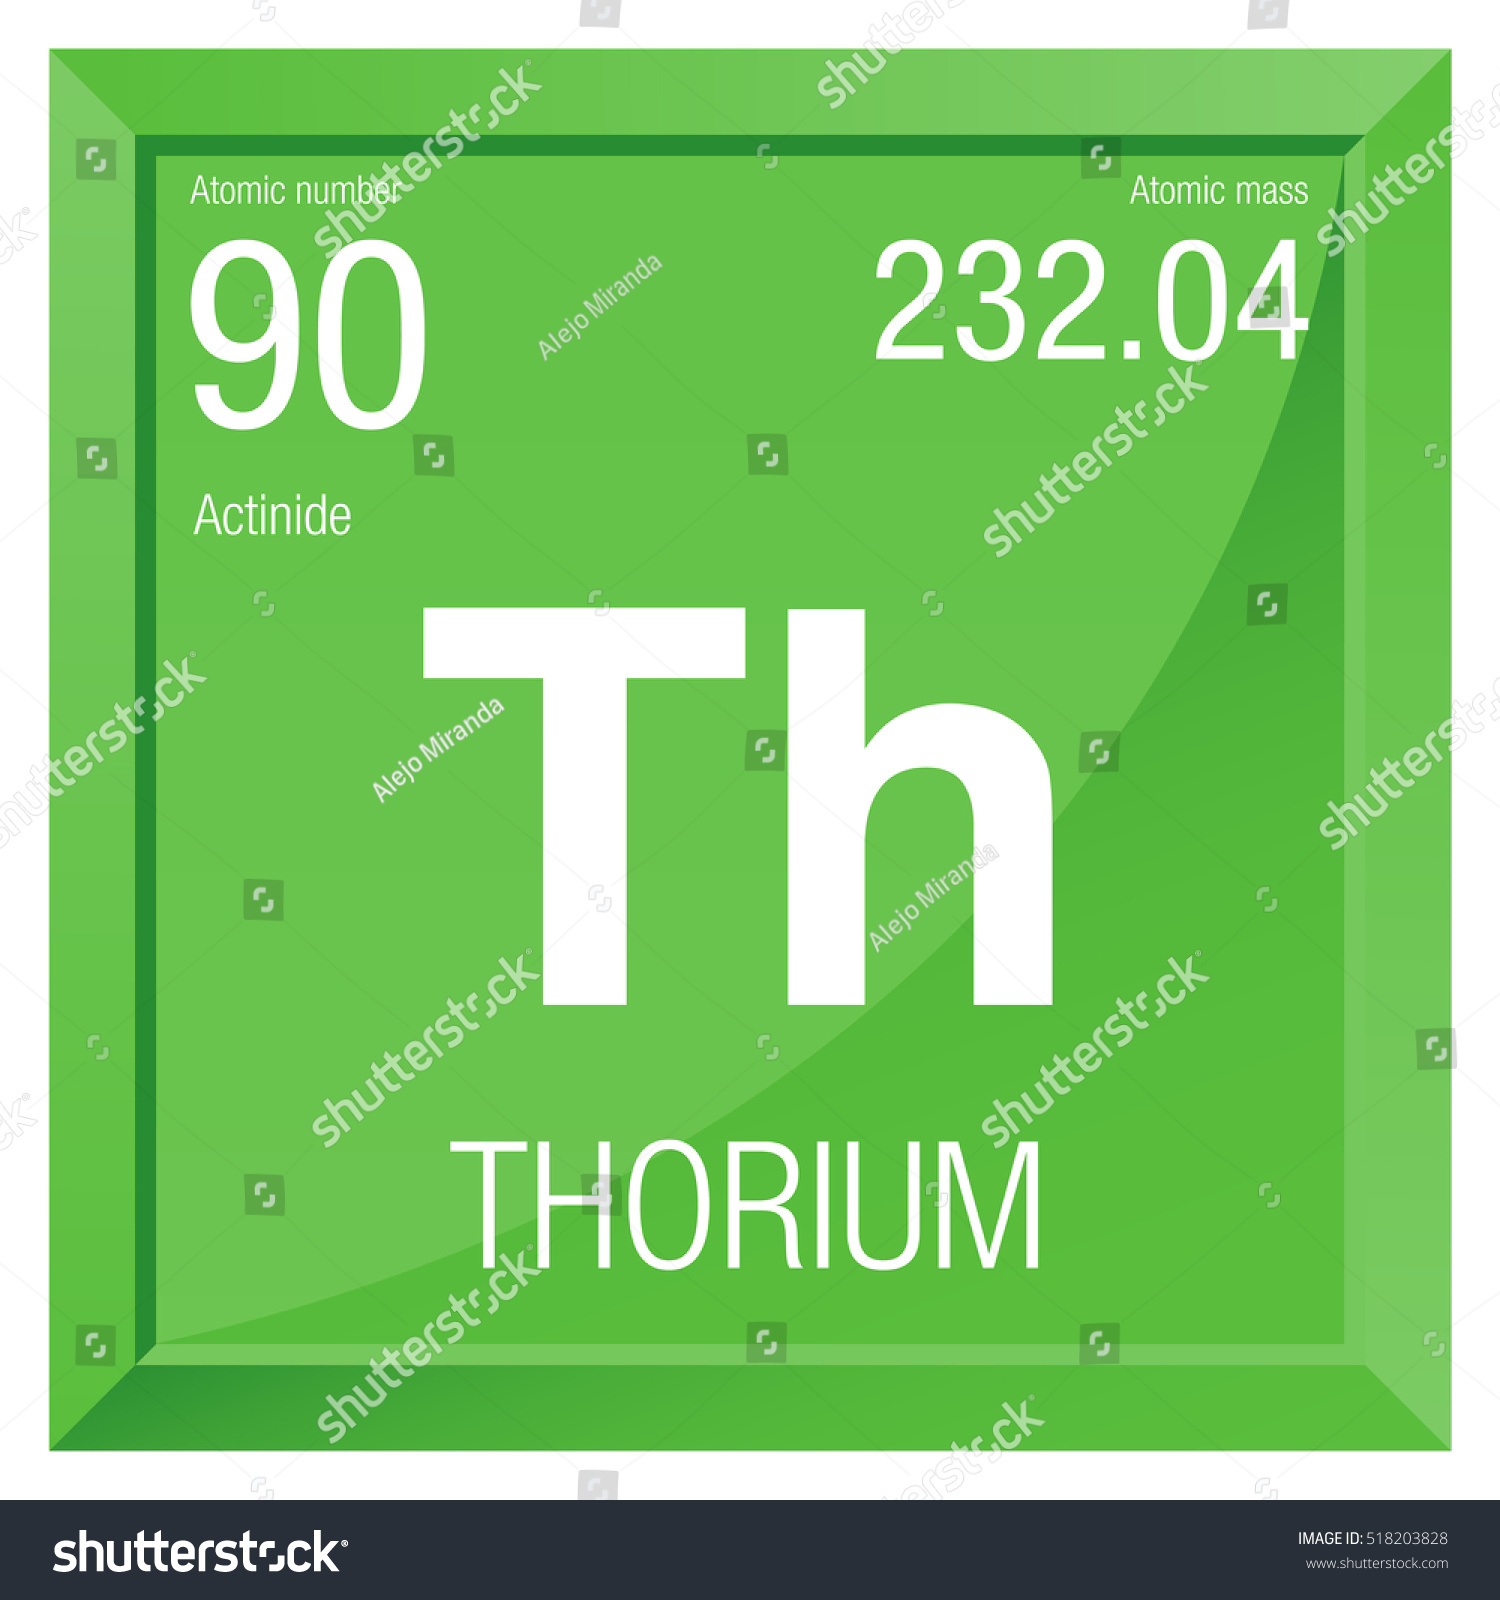 F symbol periodic table image collections periodic table images thorium symbol periodic table gallery periodic table images thorium symbol periodic table gallery periodic table images gamestrikefo Image collections